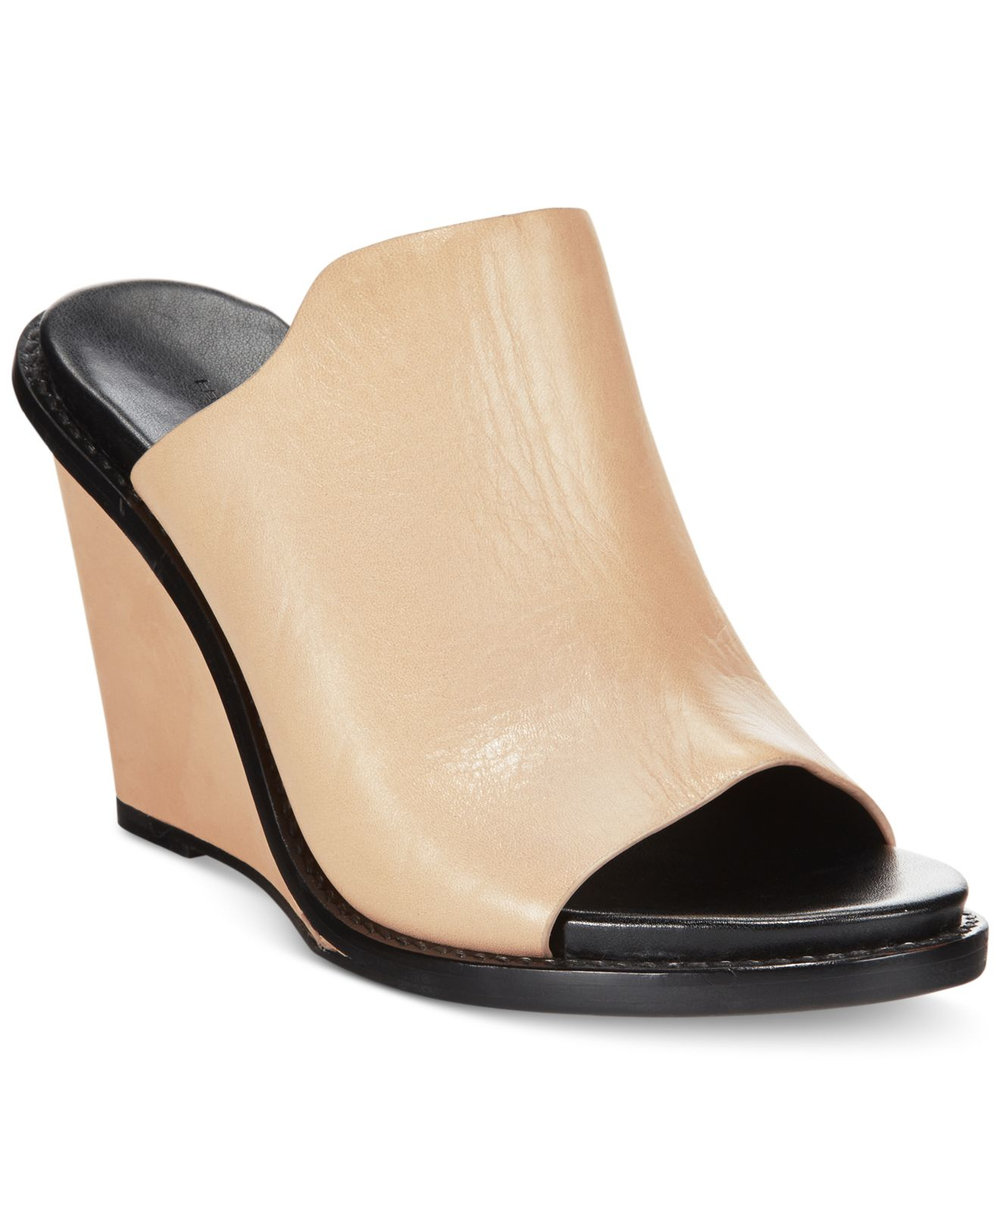 French Connection Pandra Leather Mule. Available in two colors. Bluefly. Was: $150 Now: $89.